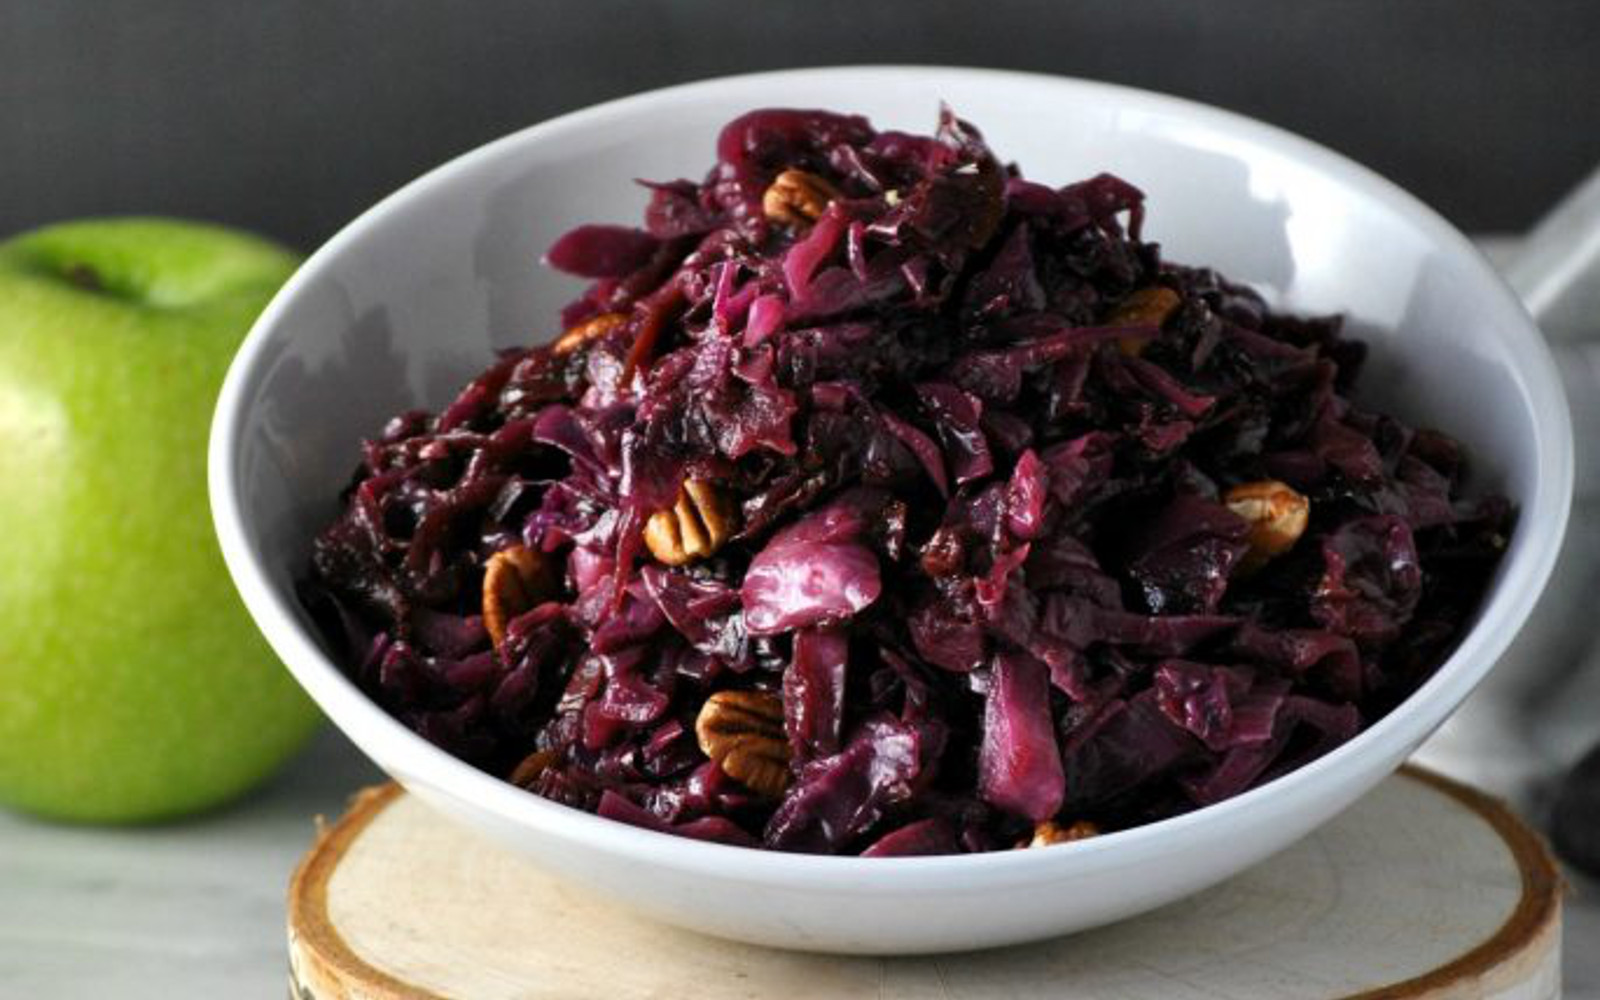 Braised Red Cabbage With Apples and Pecans